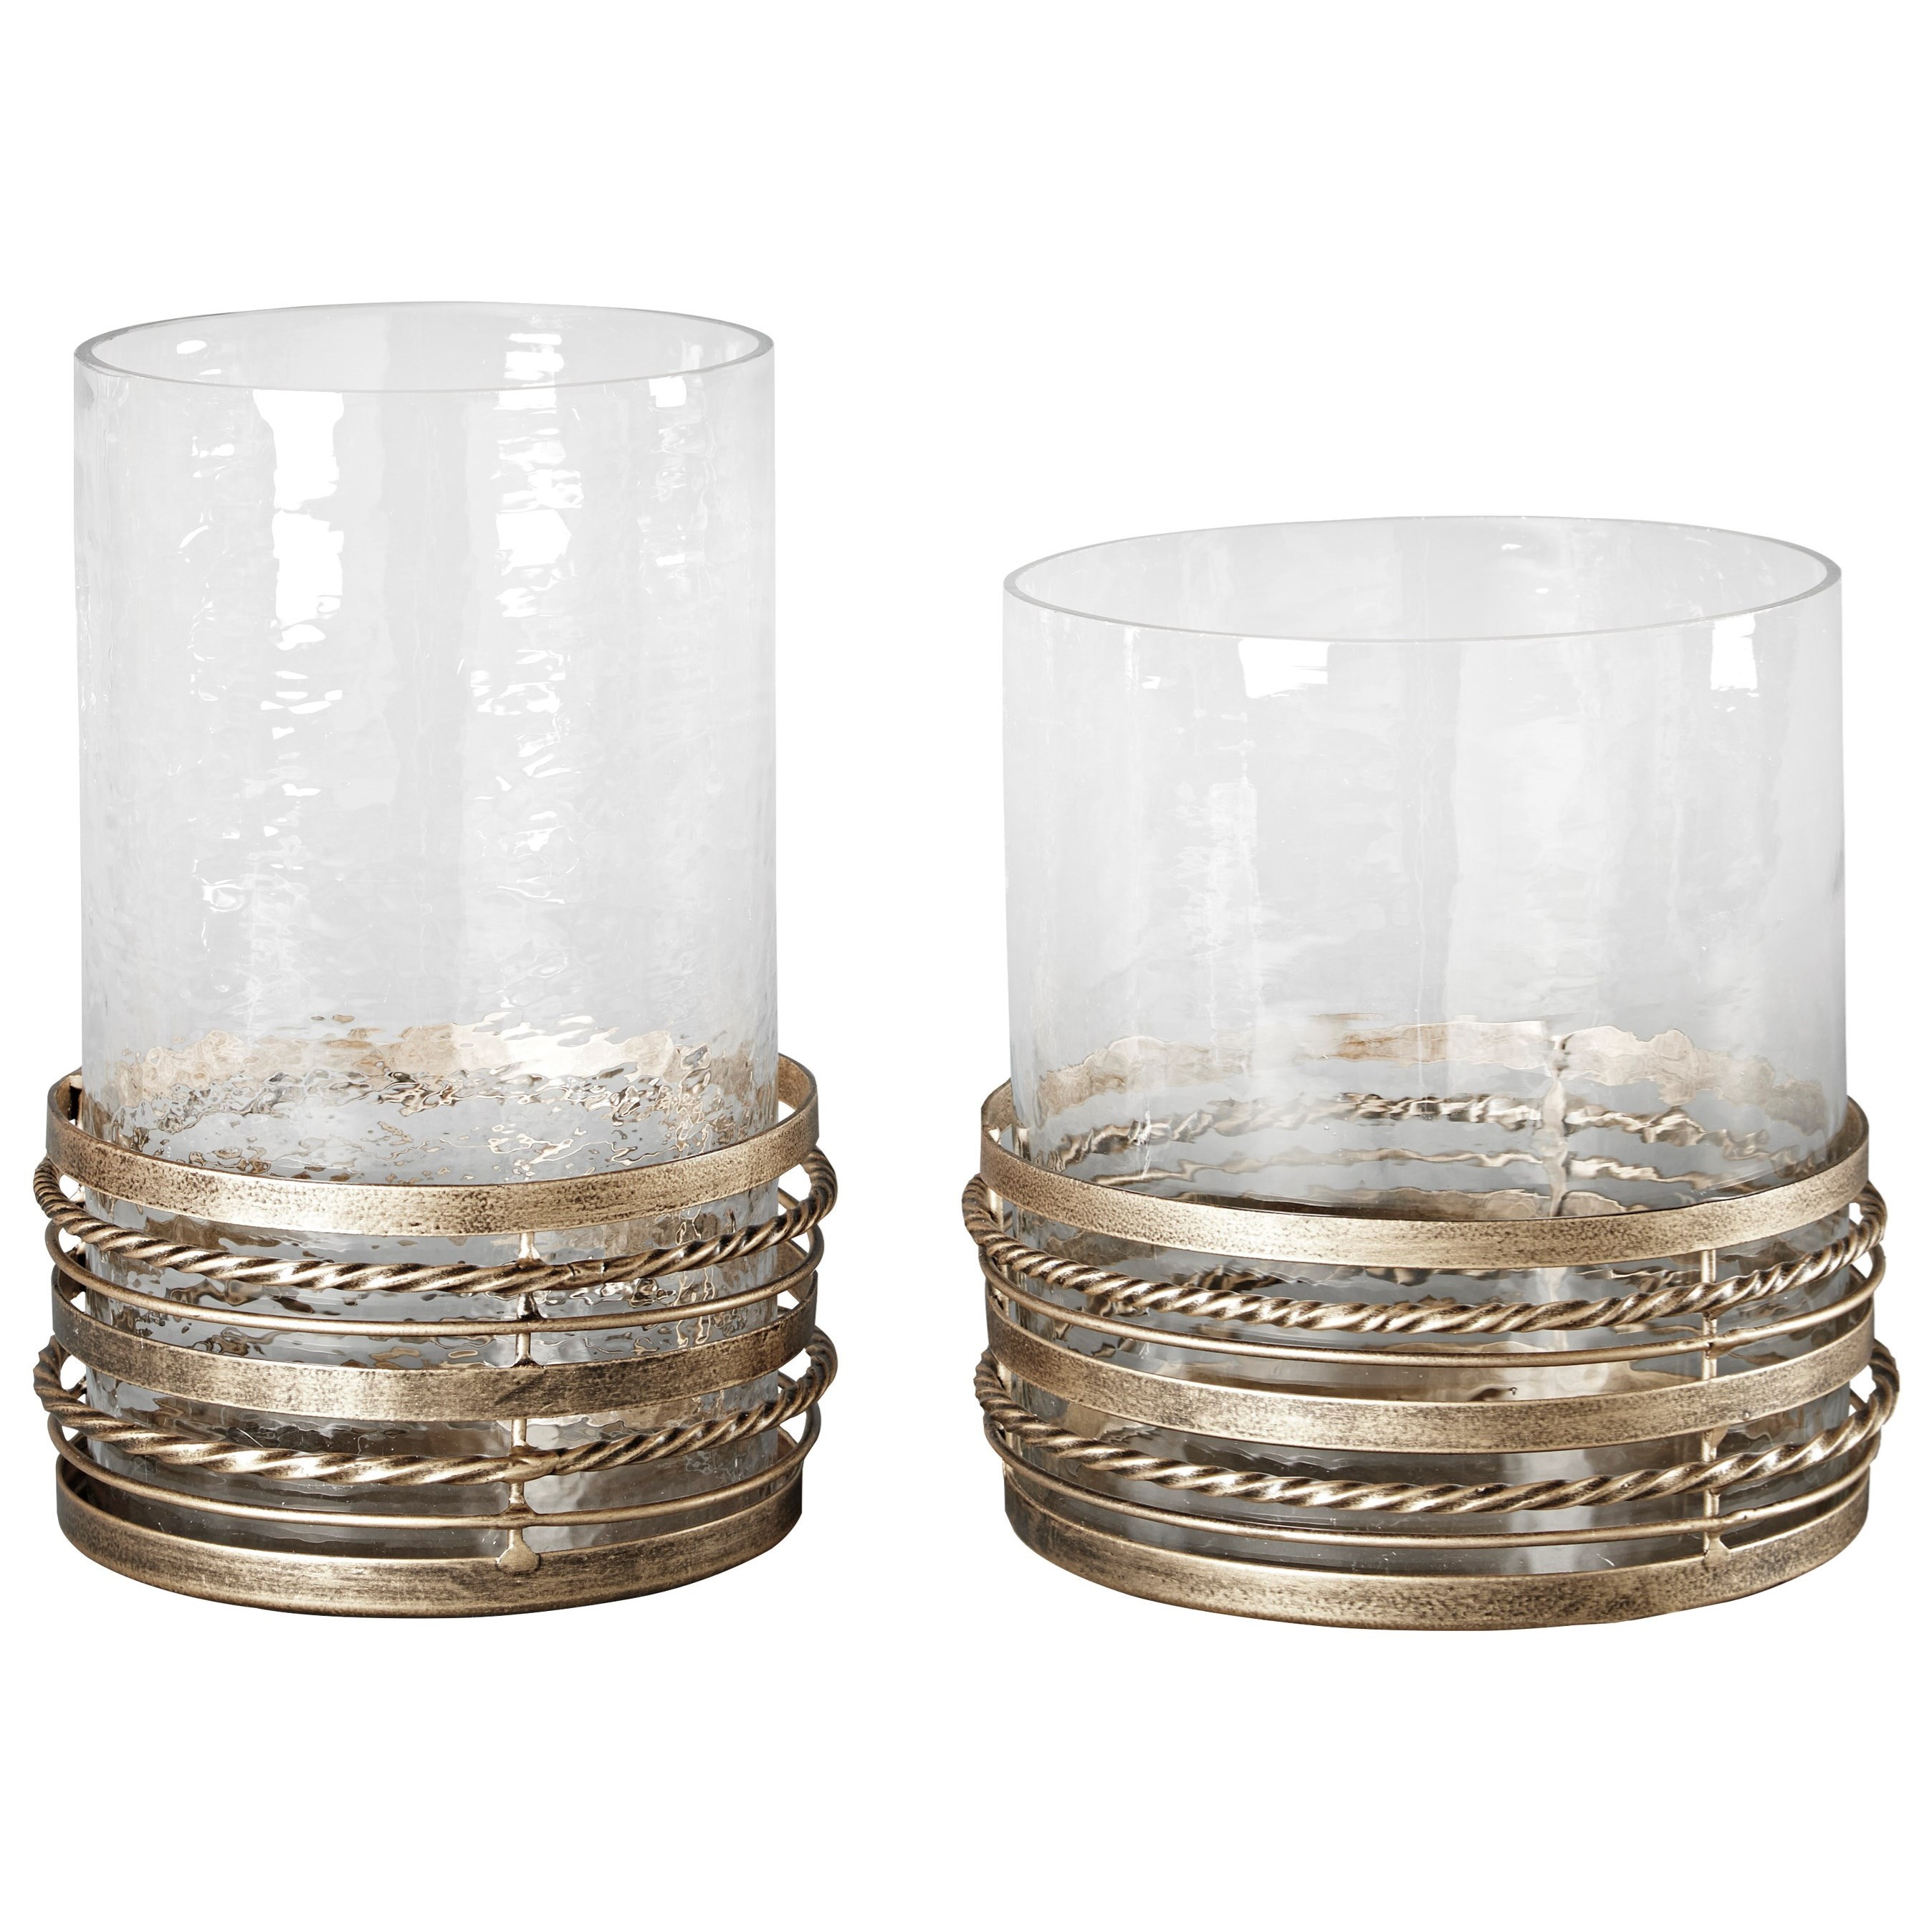 Signature Design by Ashley Furniture Accents Obaida - Antique Gold Finish Candle Holders - Item Number: A2000203C